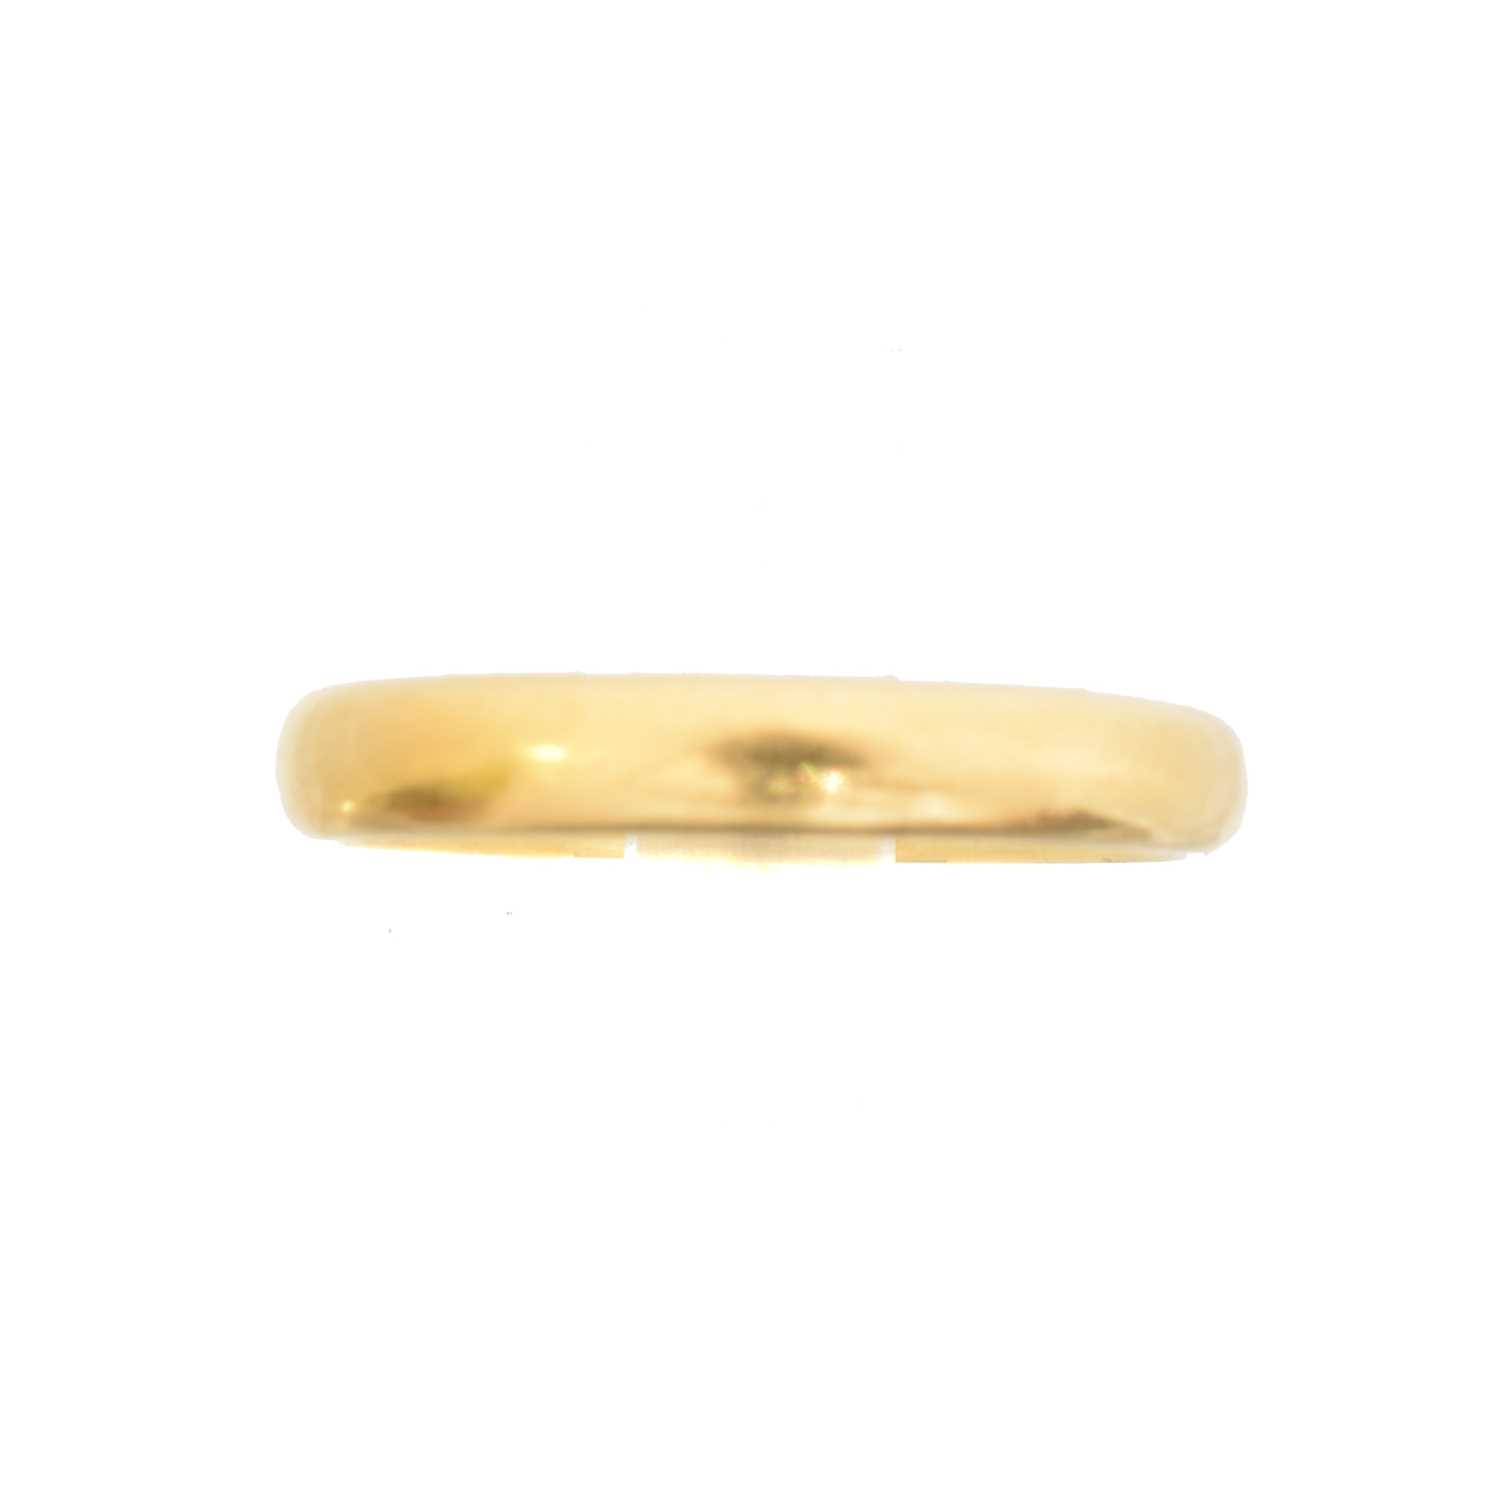 Lot 43 - A 22ct gold band ring